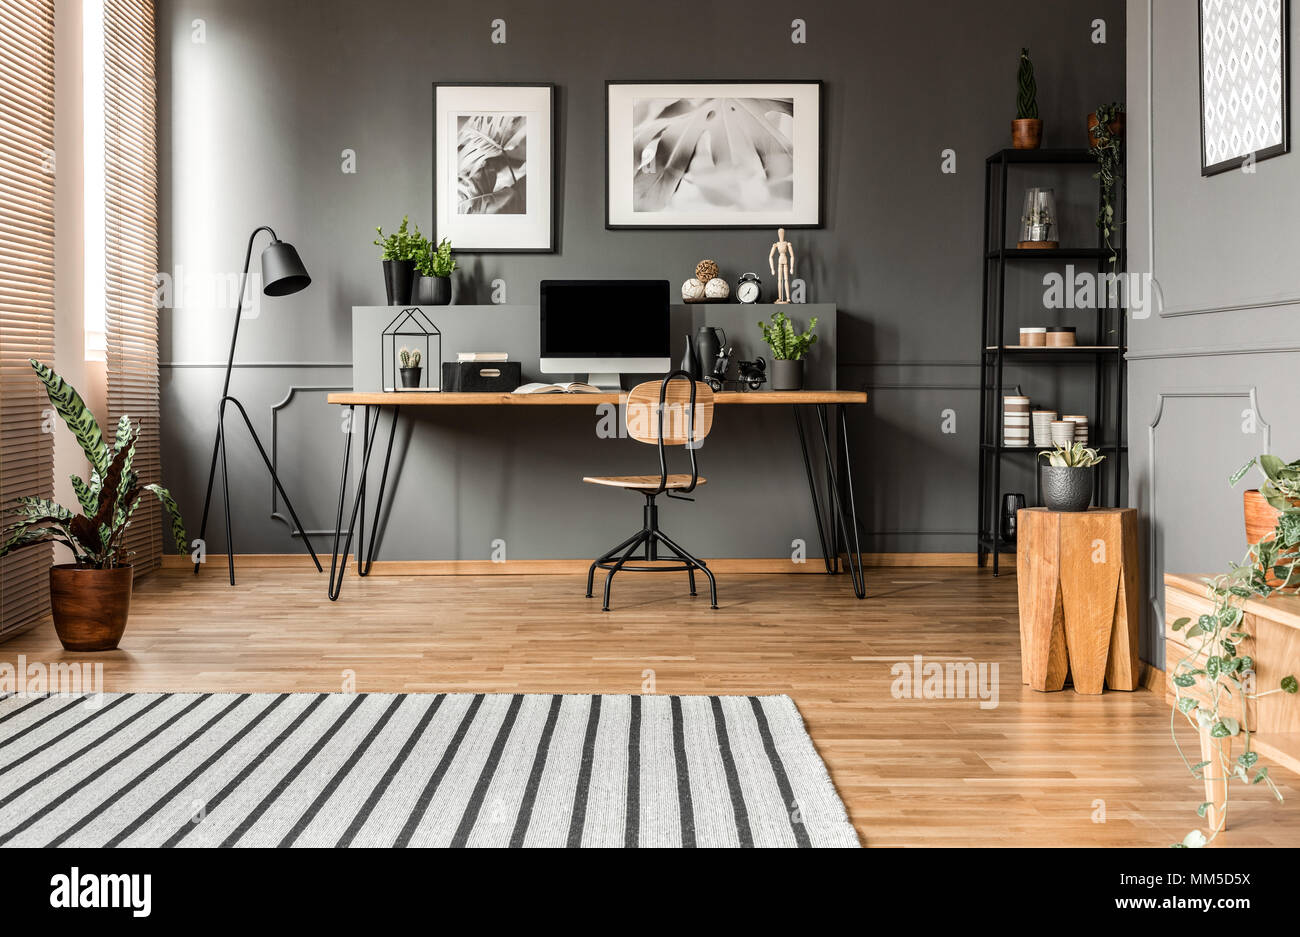 Plant on wooden stool near table with computer monitor in grey work area interior with posters - Stock Image